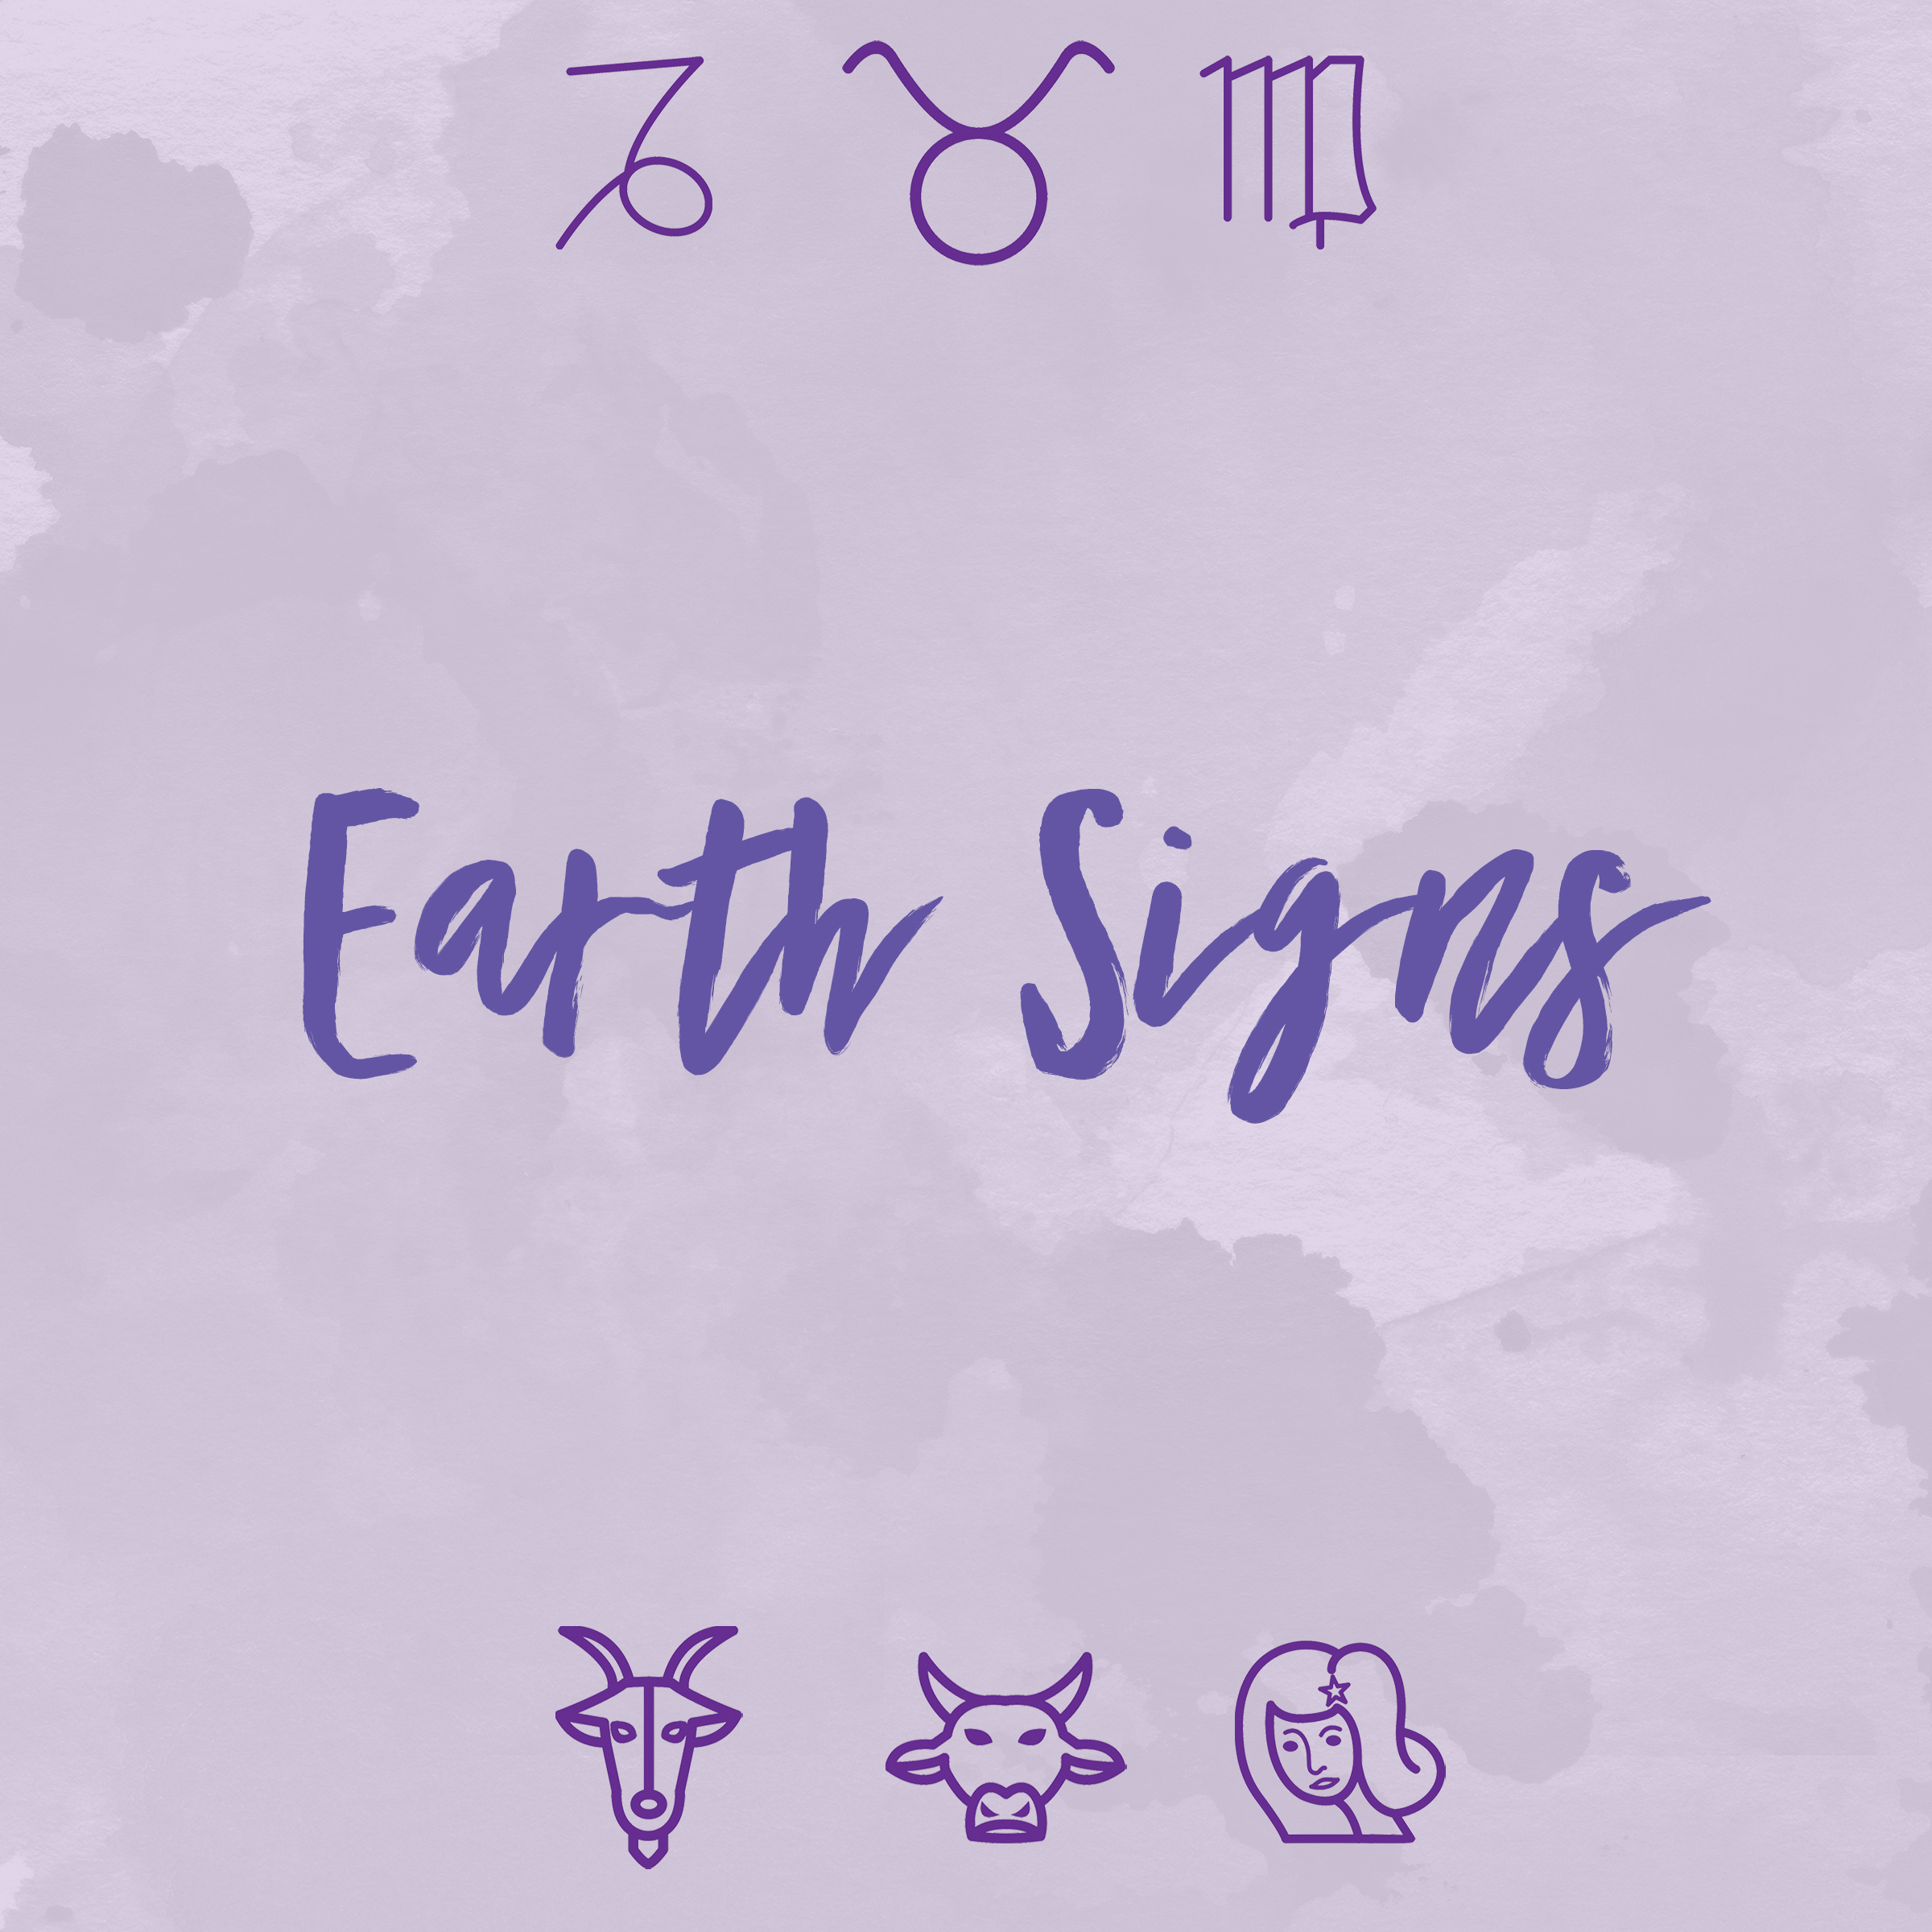 earthsigns.jpg